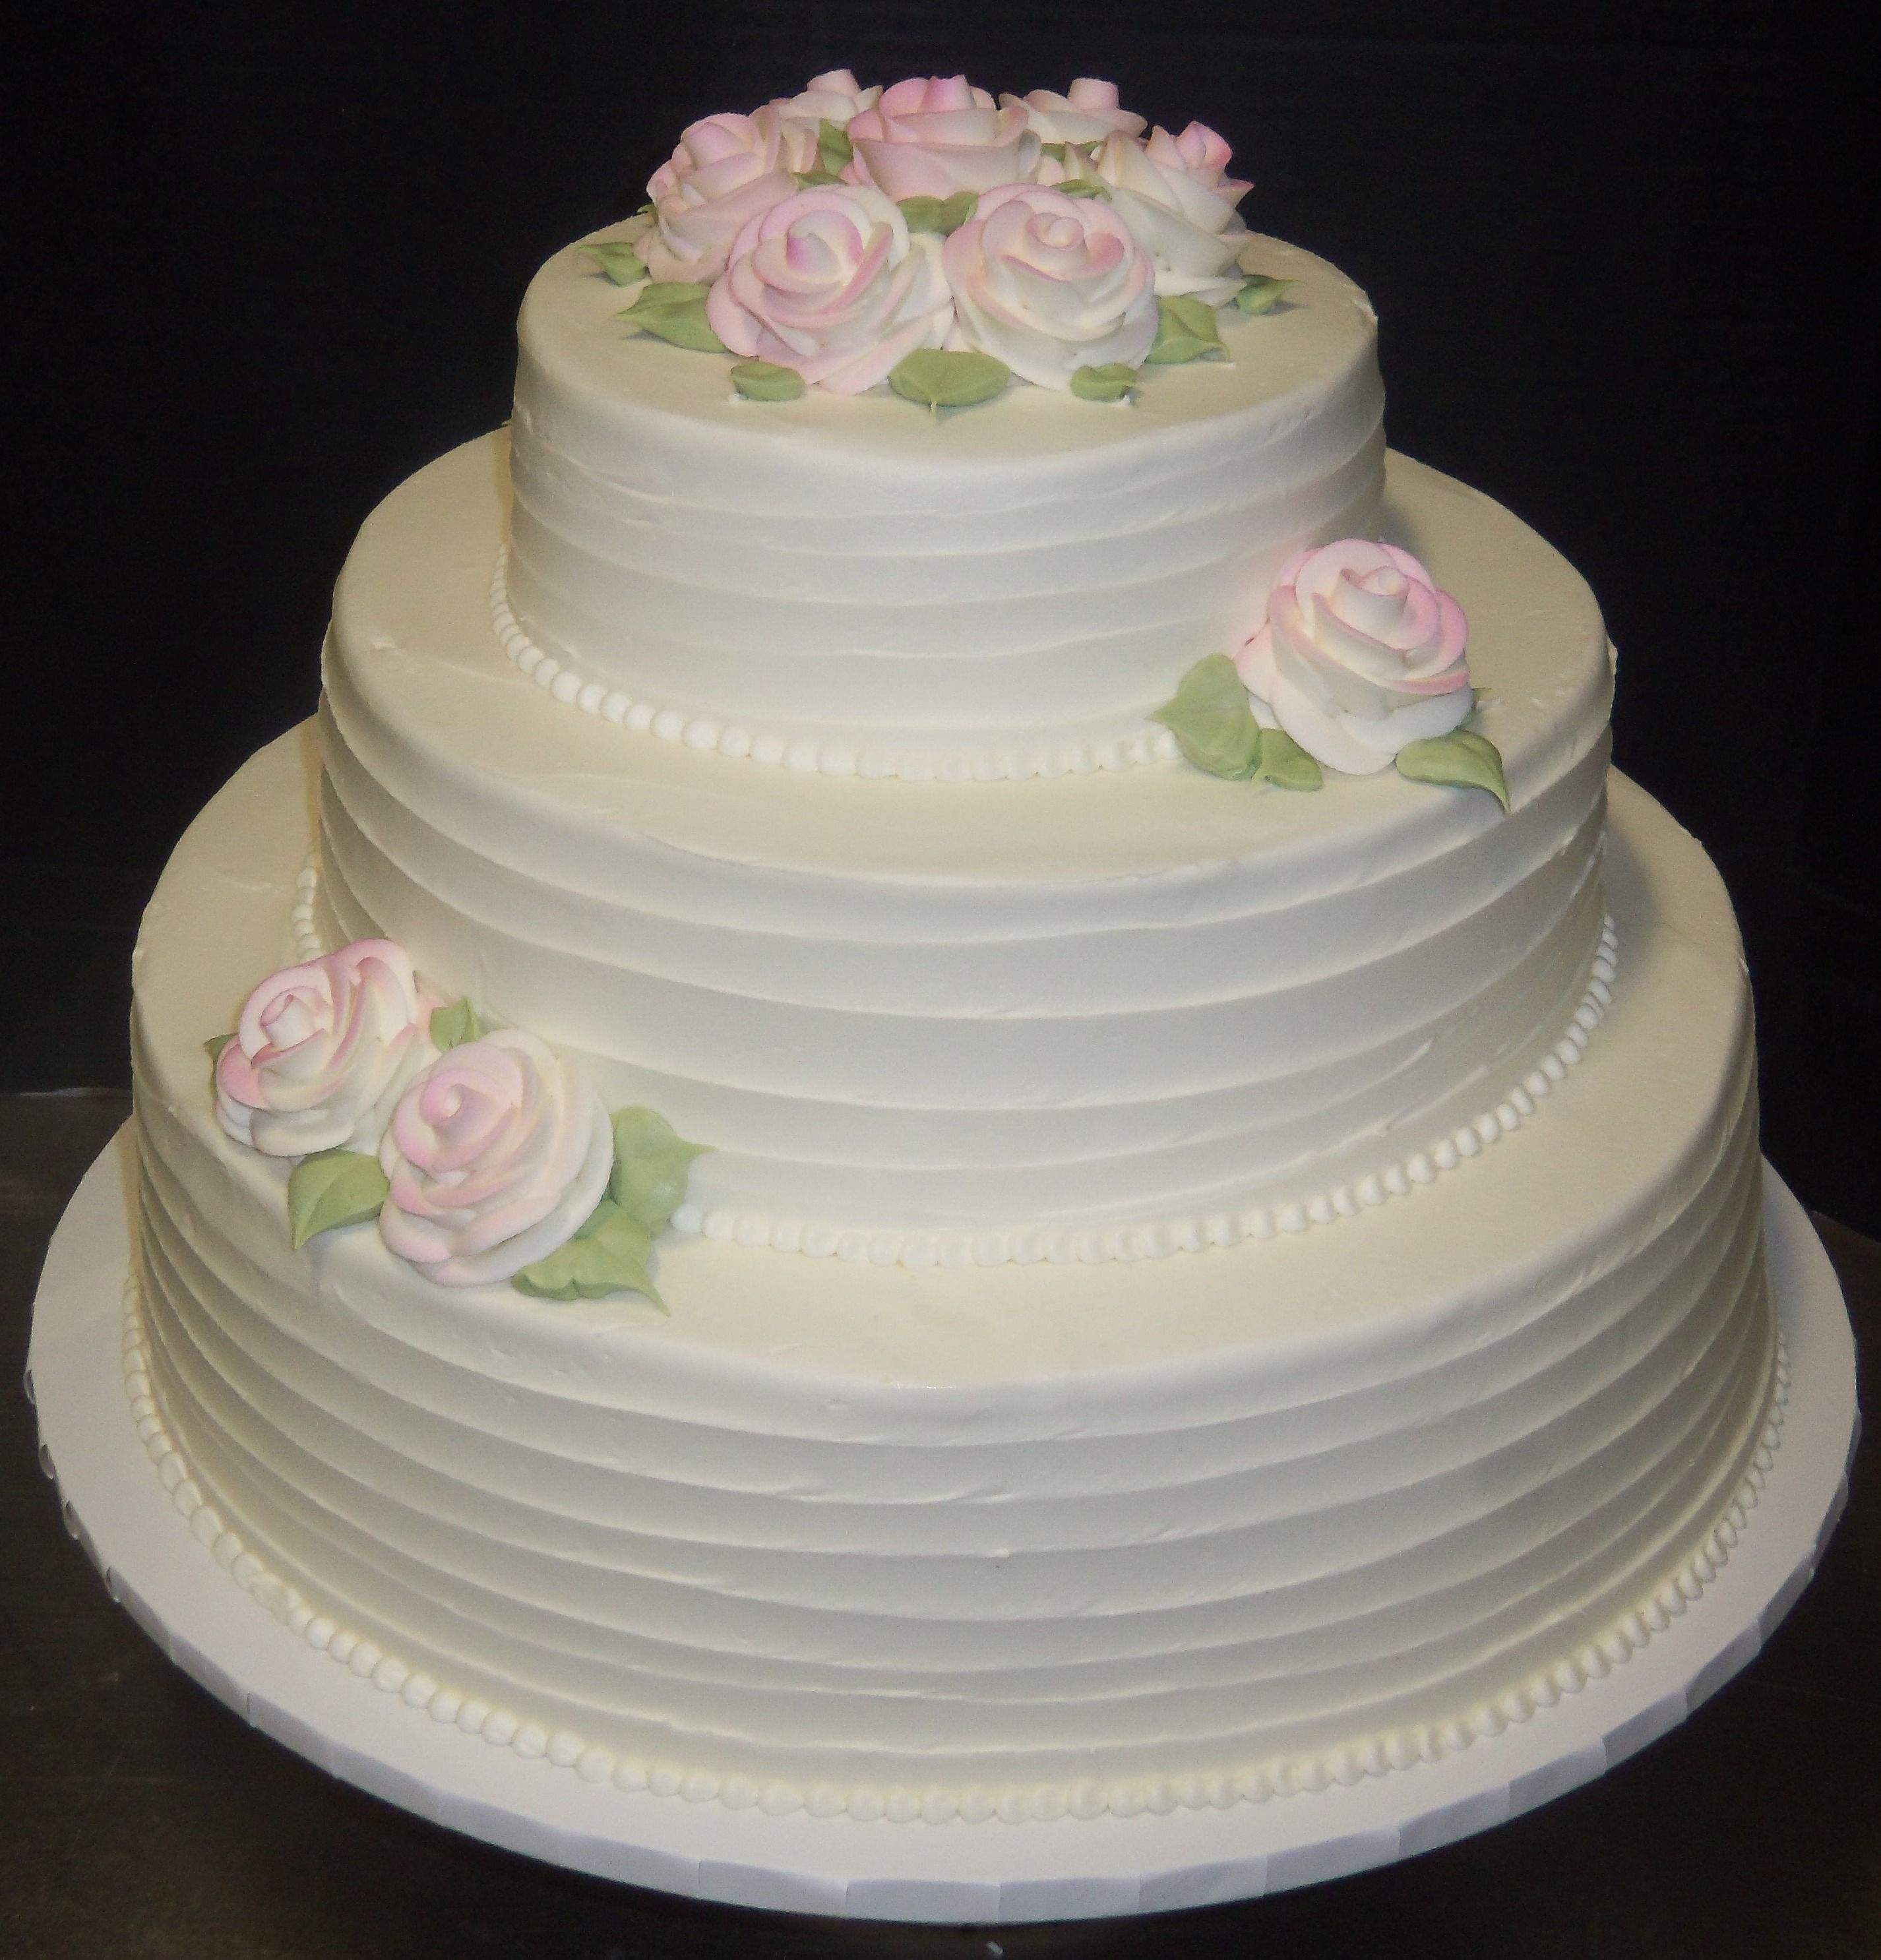 Pale pink roses decorate a three tier cake with horizontal line textures around the layers.